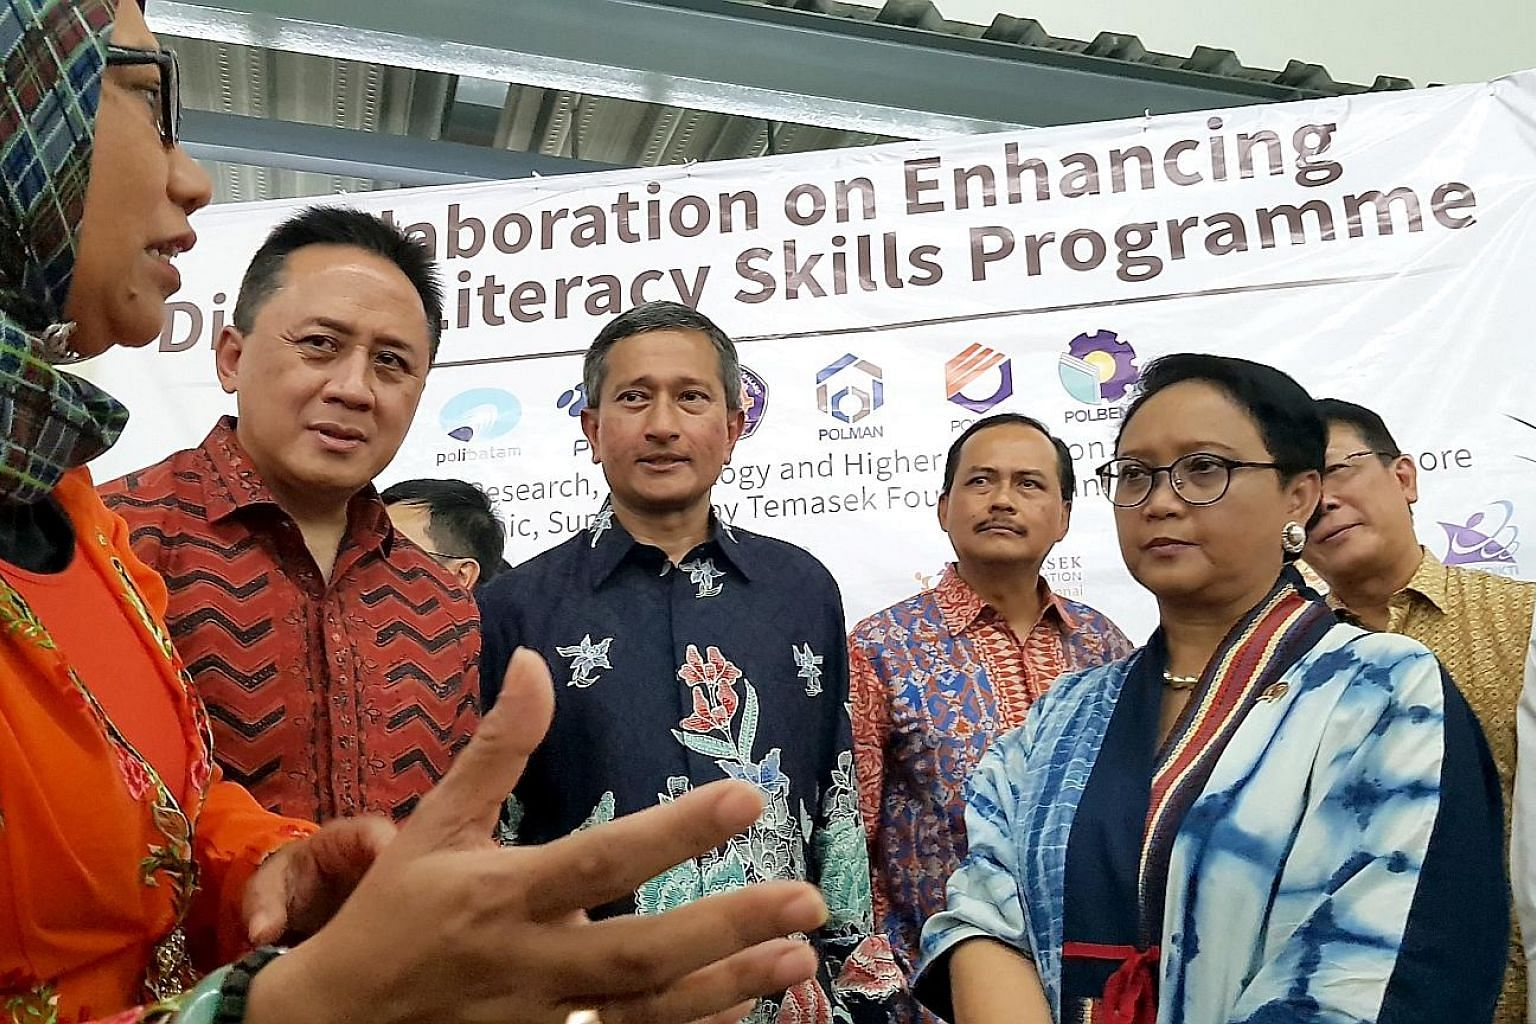 Singapore Foreign Minister Vivian Balakrishnan and his Indonesian counterpart Retno Marsudi (in blue dress) on a tour of Nongsa Digital Park, which was launched yesterday. With them were (from left) Dr Paristiyanti Nurwardani of the Indonesian Minist